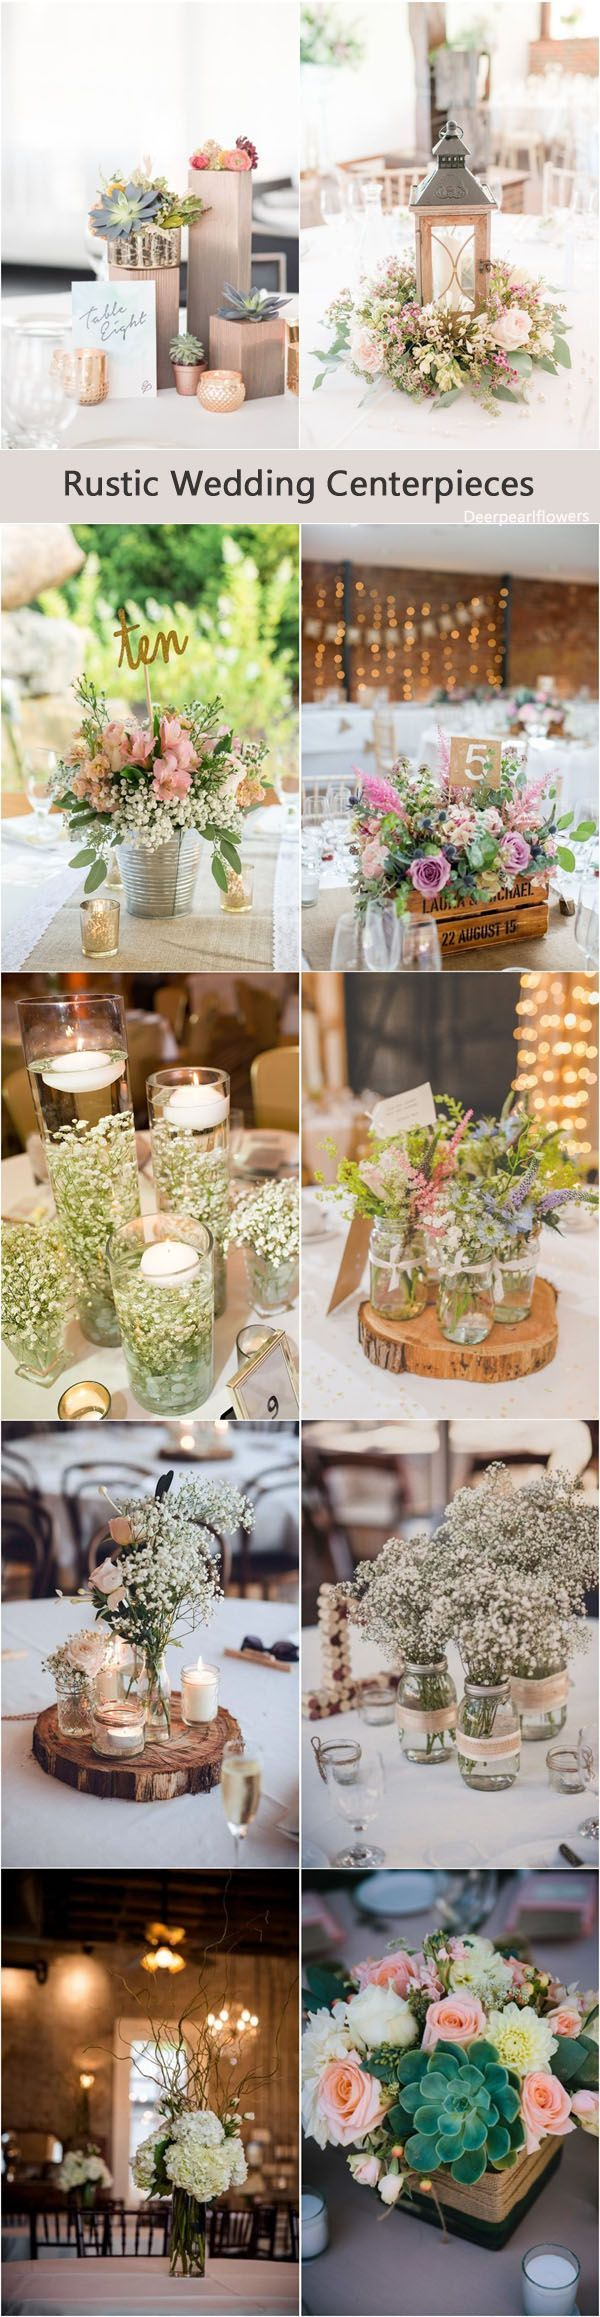 Wedding decoration ideas 2018   Easy Rustic Wedding Ideas That You Could Try in   Wedding